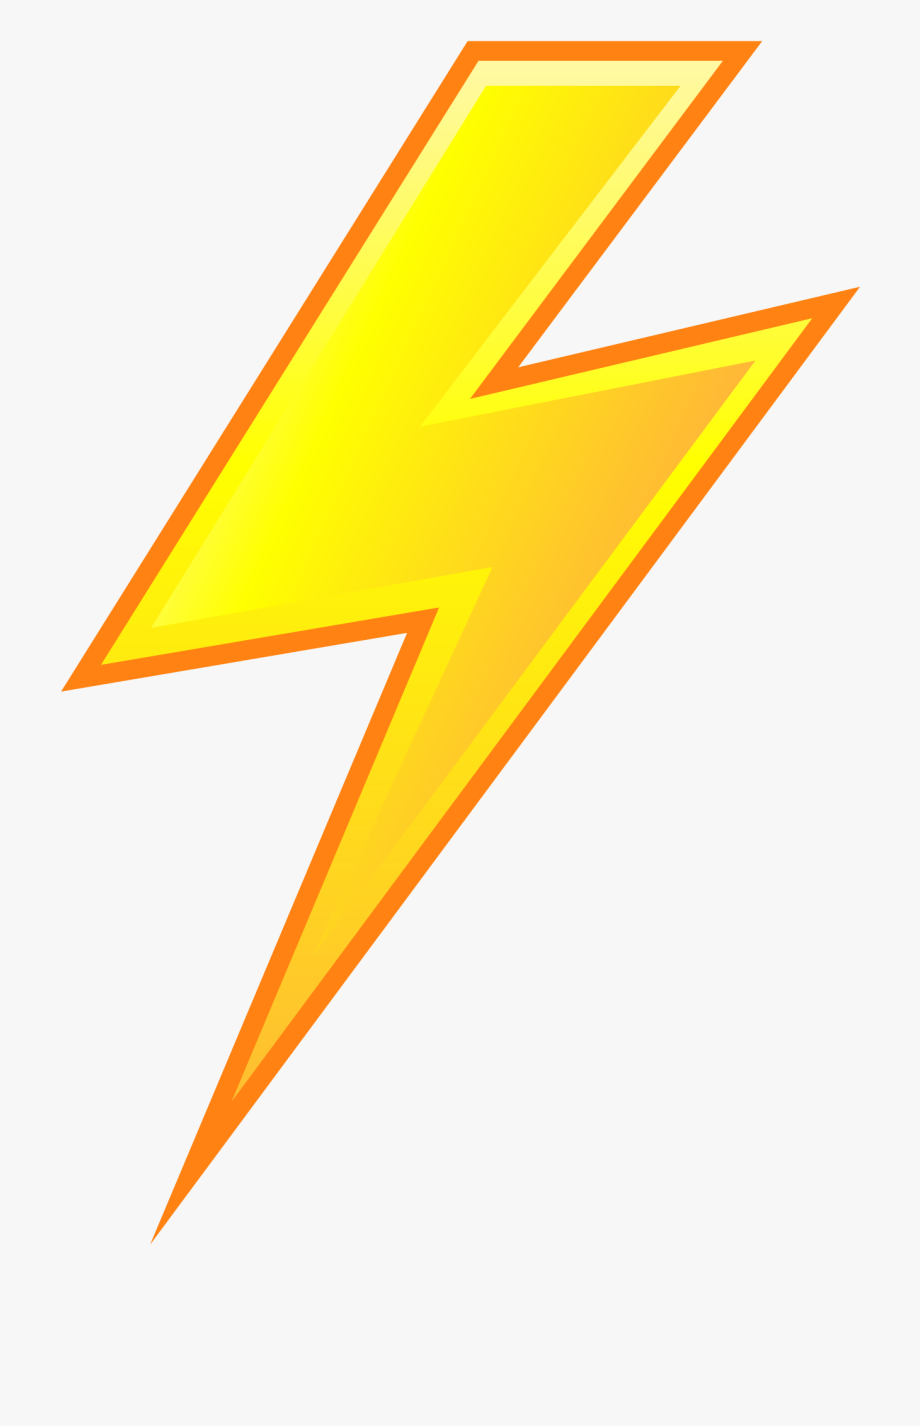 Electric clipart lightning flash. Electricity strike electrico simbolo